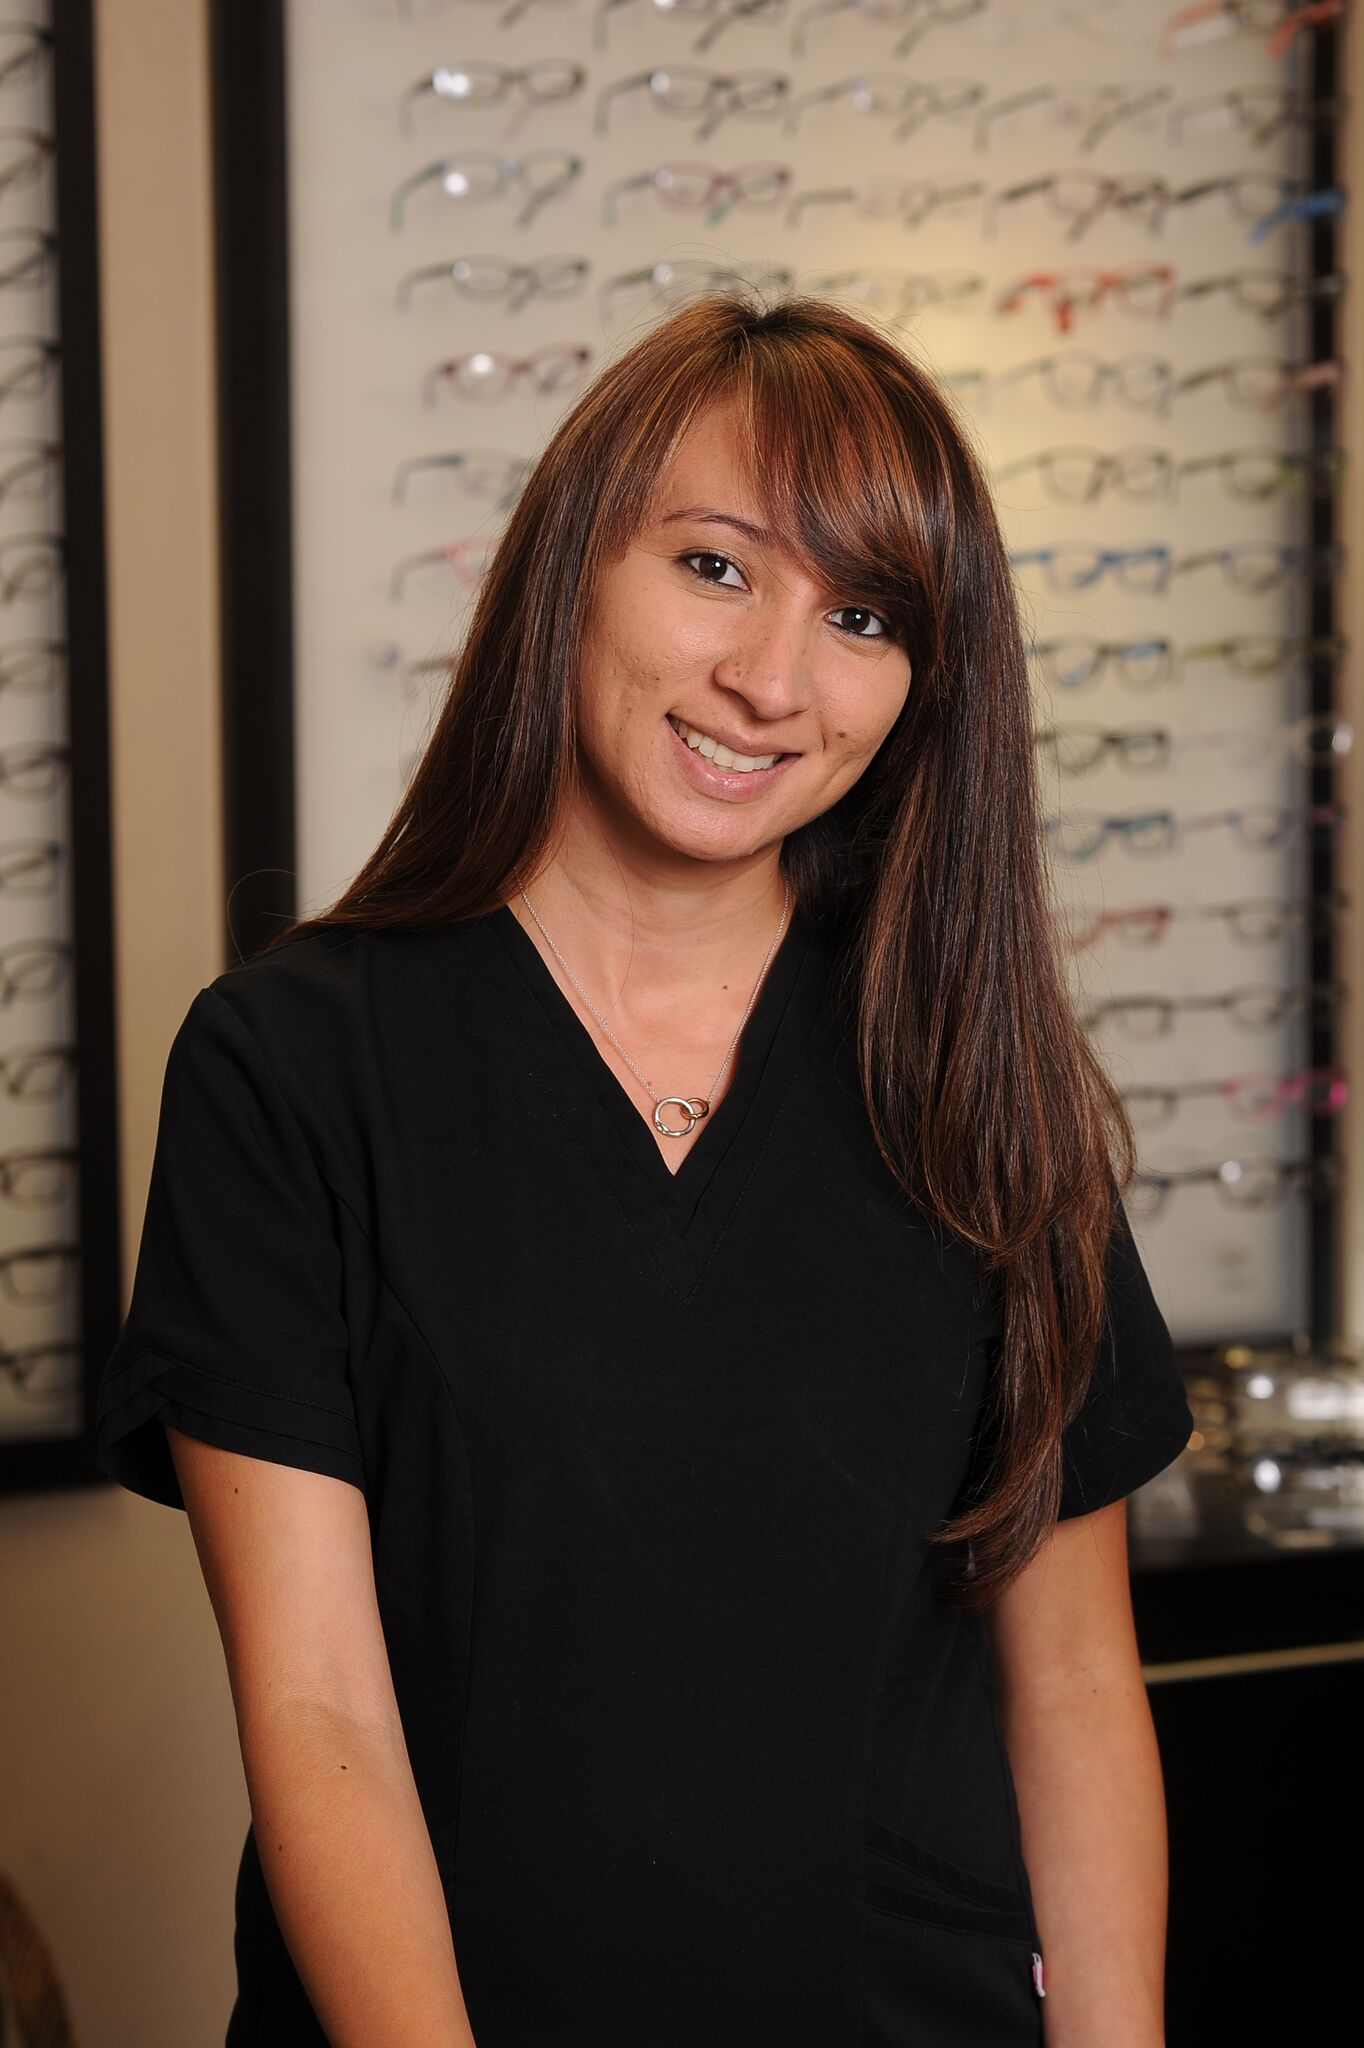 Hi my name is Alyssa….I can help you select the perfect pair of glasses at the time of your appointment.   My job is to educate our patients on all of the up to date lens technologies to help make the right choices for both work and play.  I call it lifestyle dispensing….  Whether they're your first pair or you've worn glasses most of your life, I will personally assure you the ones we order will fit and look perfect!